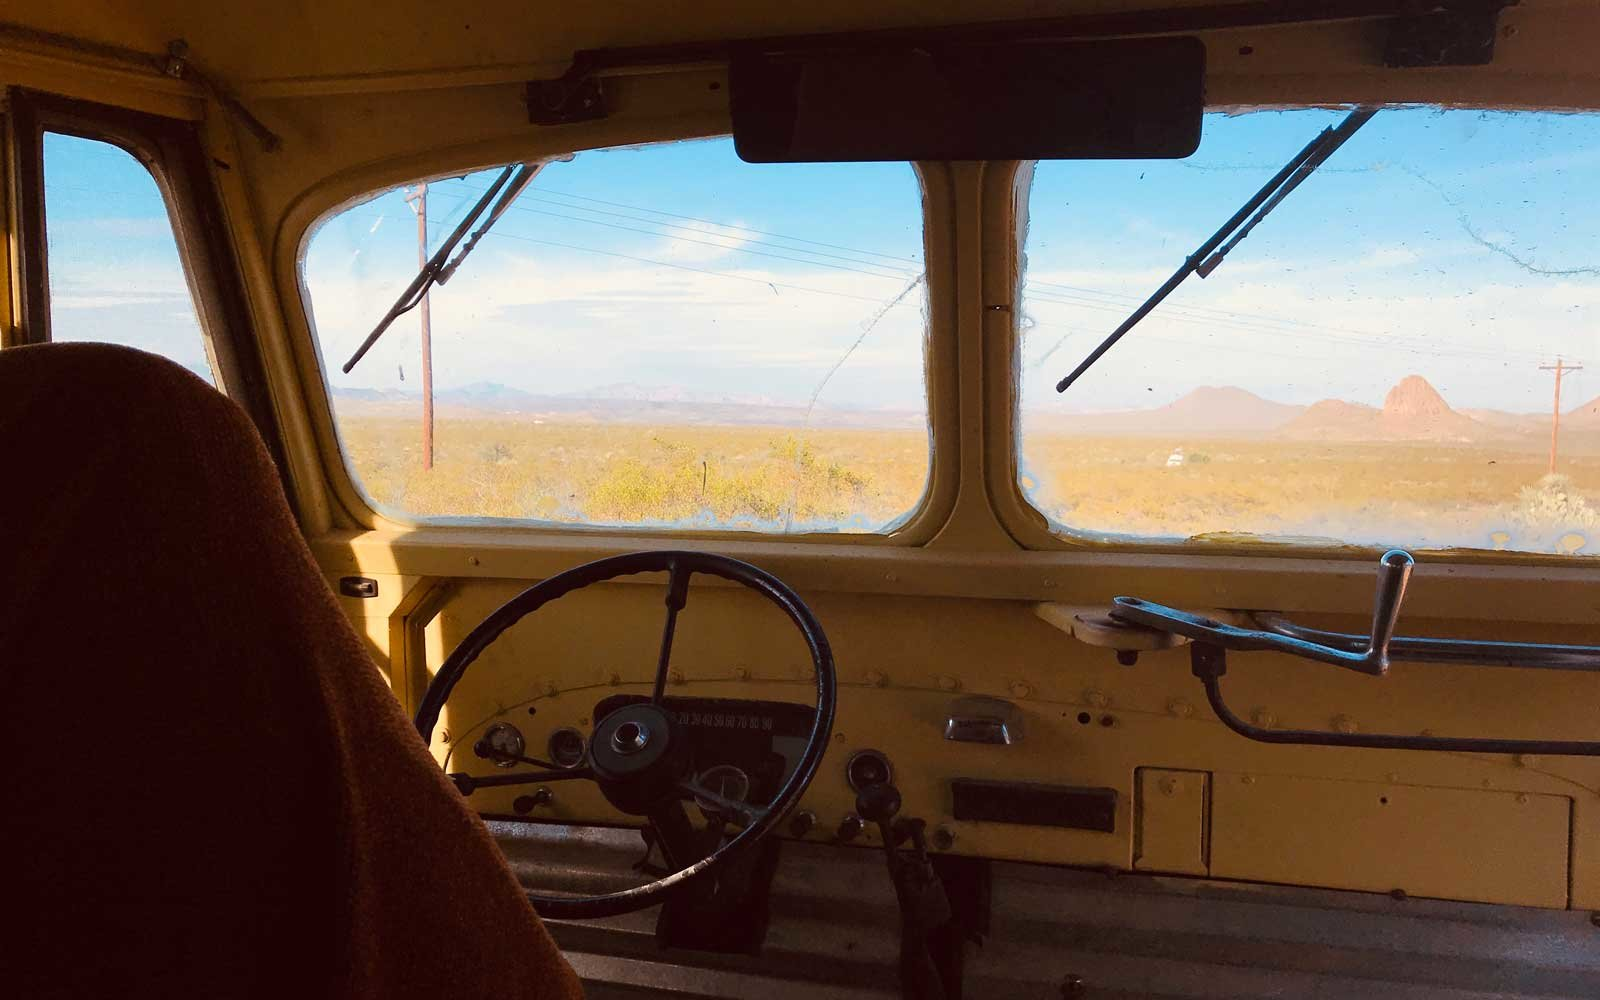 Retro School Bus Airbnb With Incredible